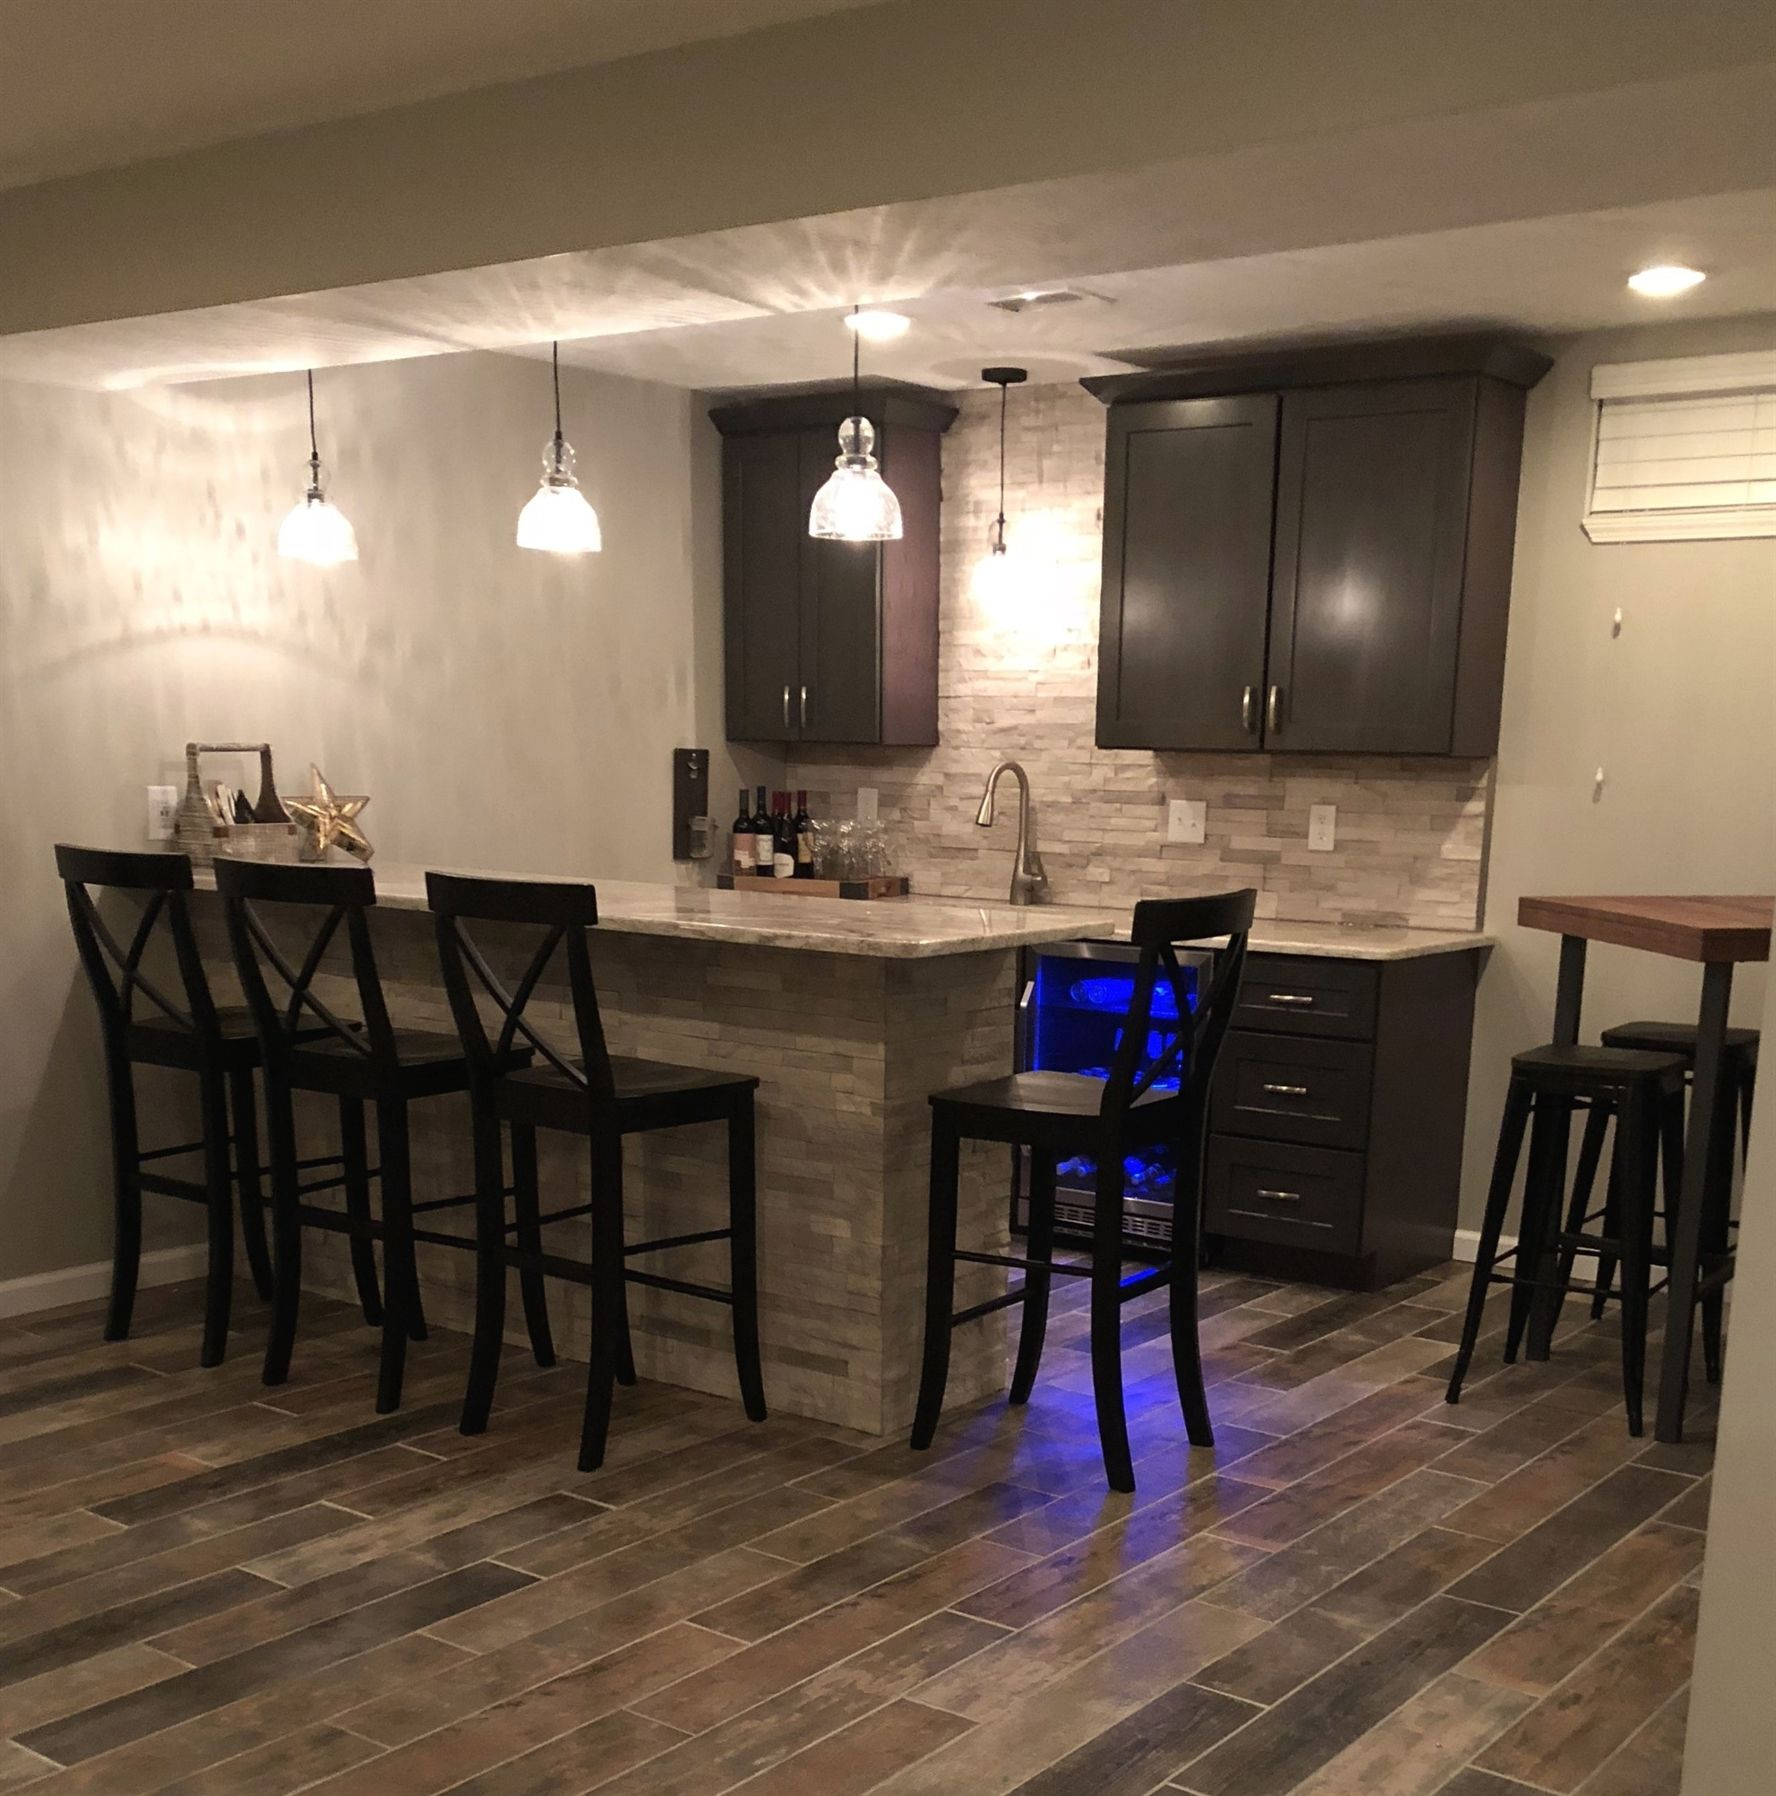 Basement Bar With Stone Veneer Backsplash And Bar Surround. Shaker Style  Cabinets With Pendant Lights And Granite Countertops. #BasementIdeasFinished